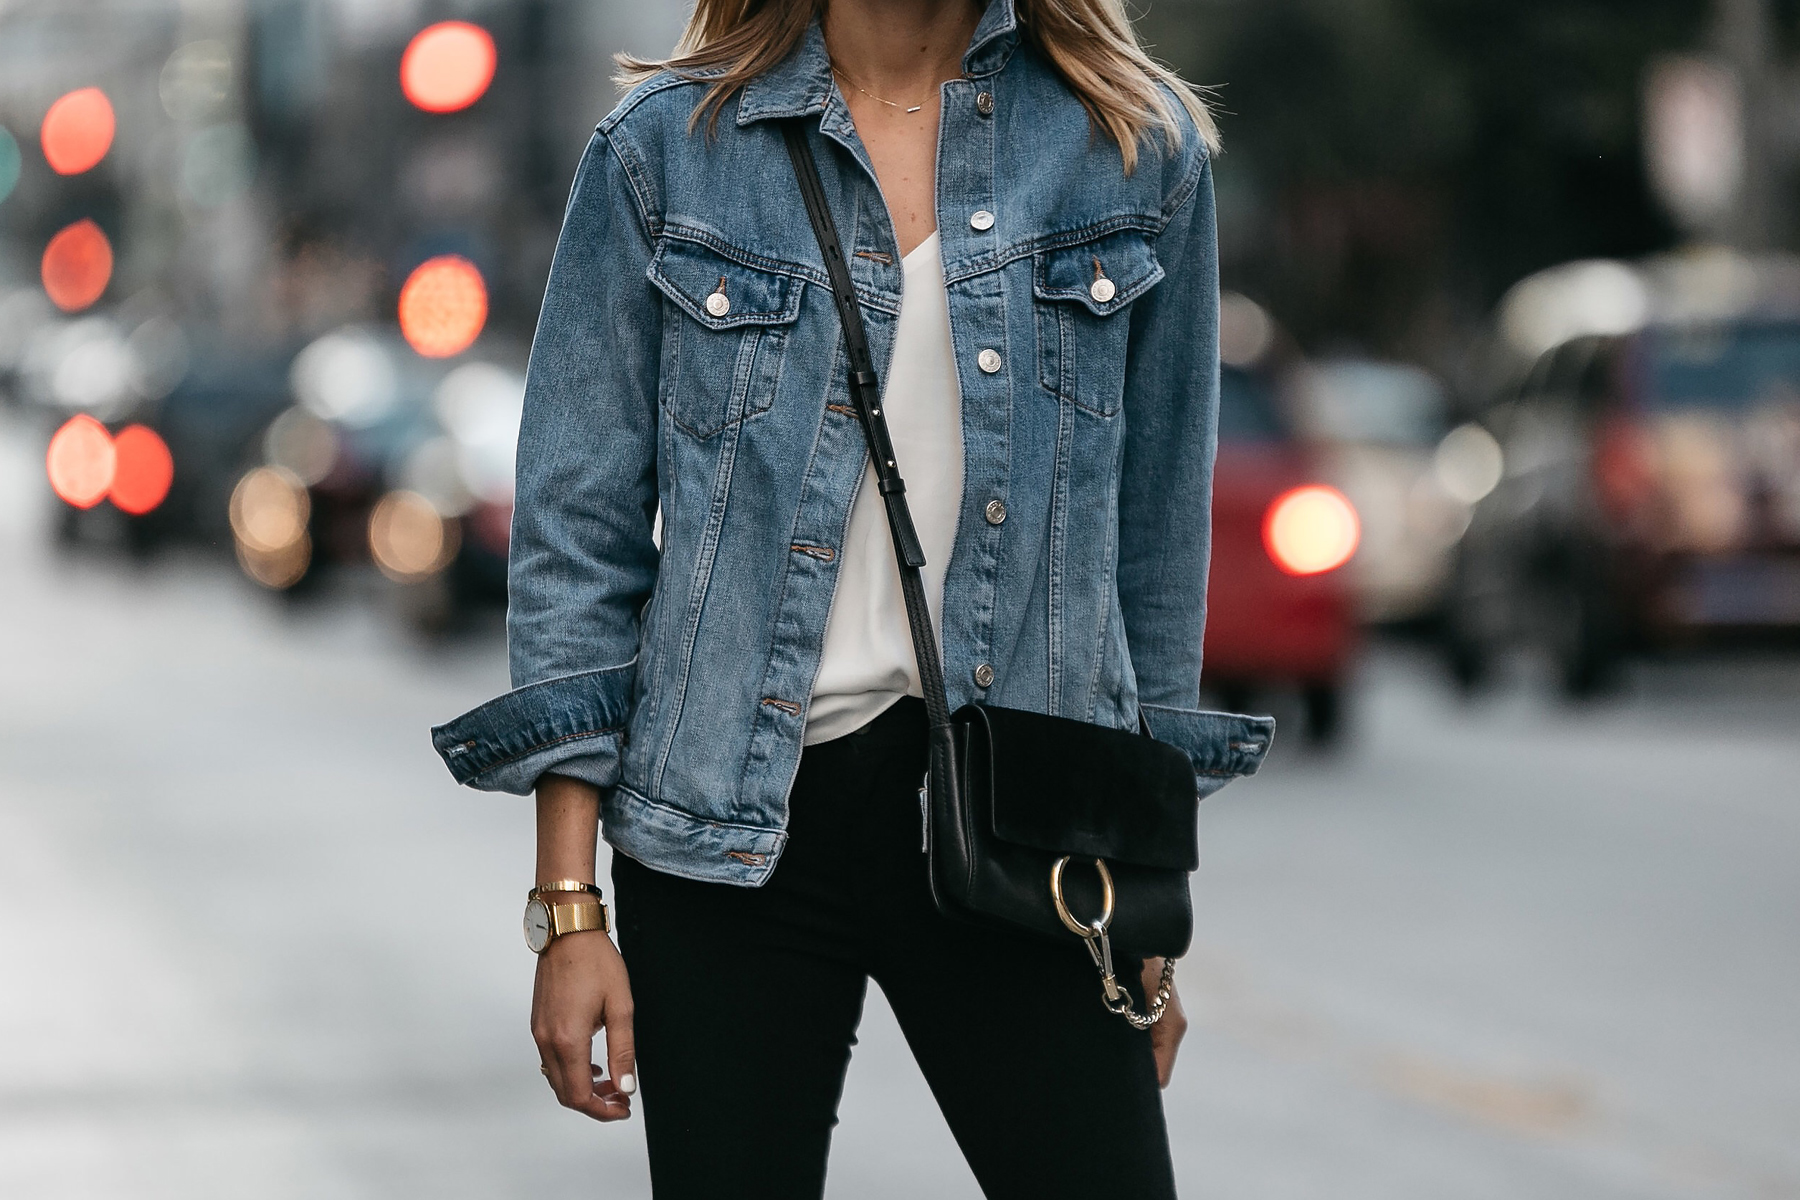 Topshop Oversized Denim Jacket Chloe Faye Handbag Fashion Jackson Dallas Blogger Fashion Blogger Street Style